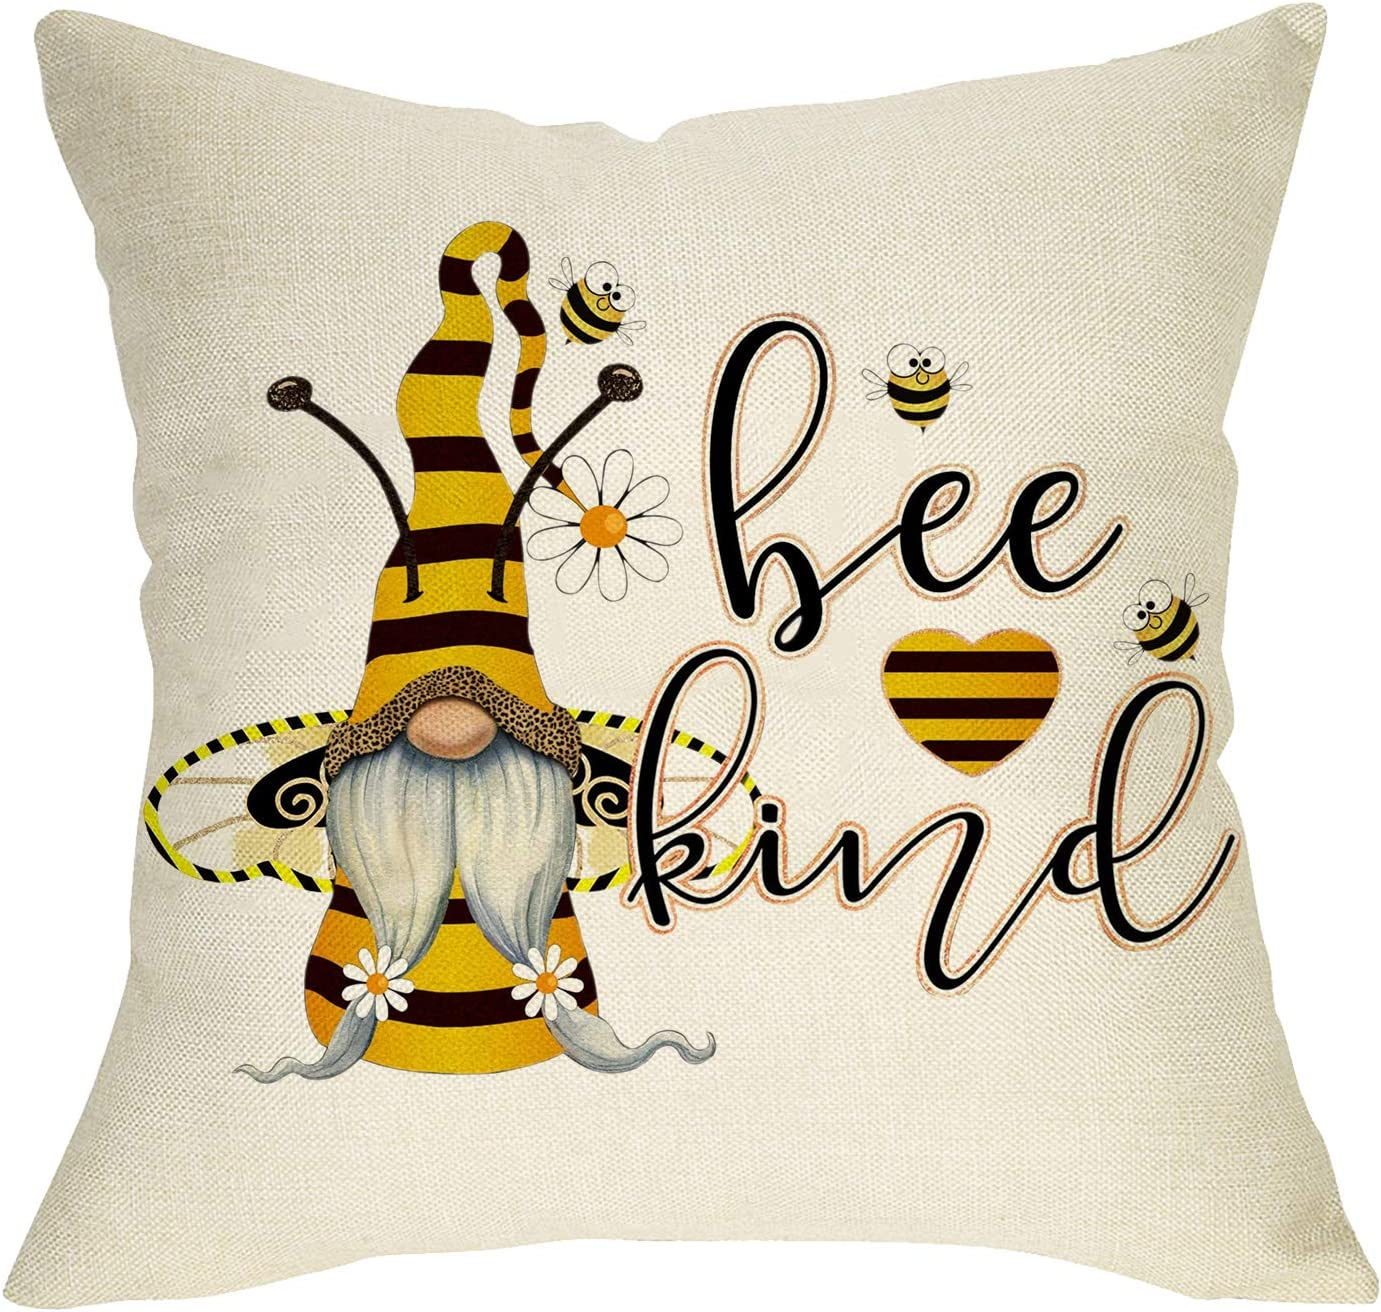 Softxpp Spring Summer Gnome Decorative Throw Pillow Cover, Daisy Heart Cushion Case Bee Kind Sign Seasonal Home Decorations, Cotton Linen Square Outside Pillowcase Decor for Sofa Couch 18 x 18